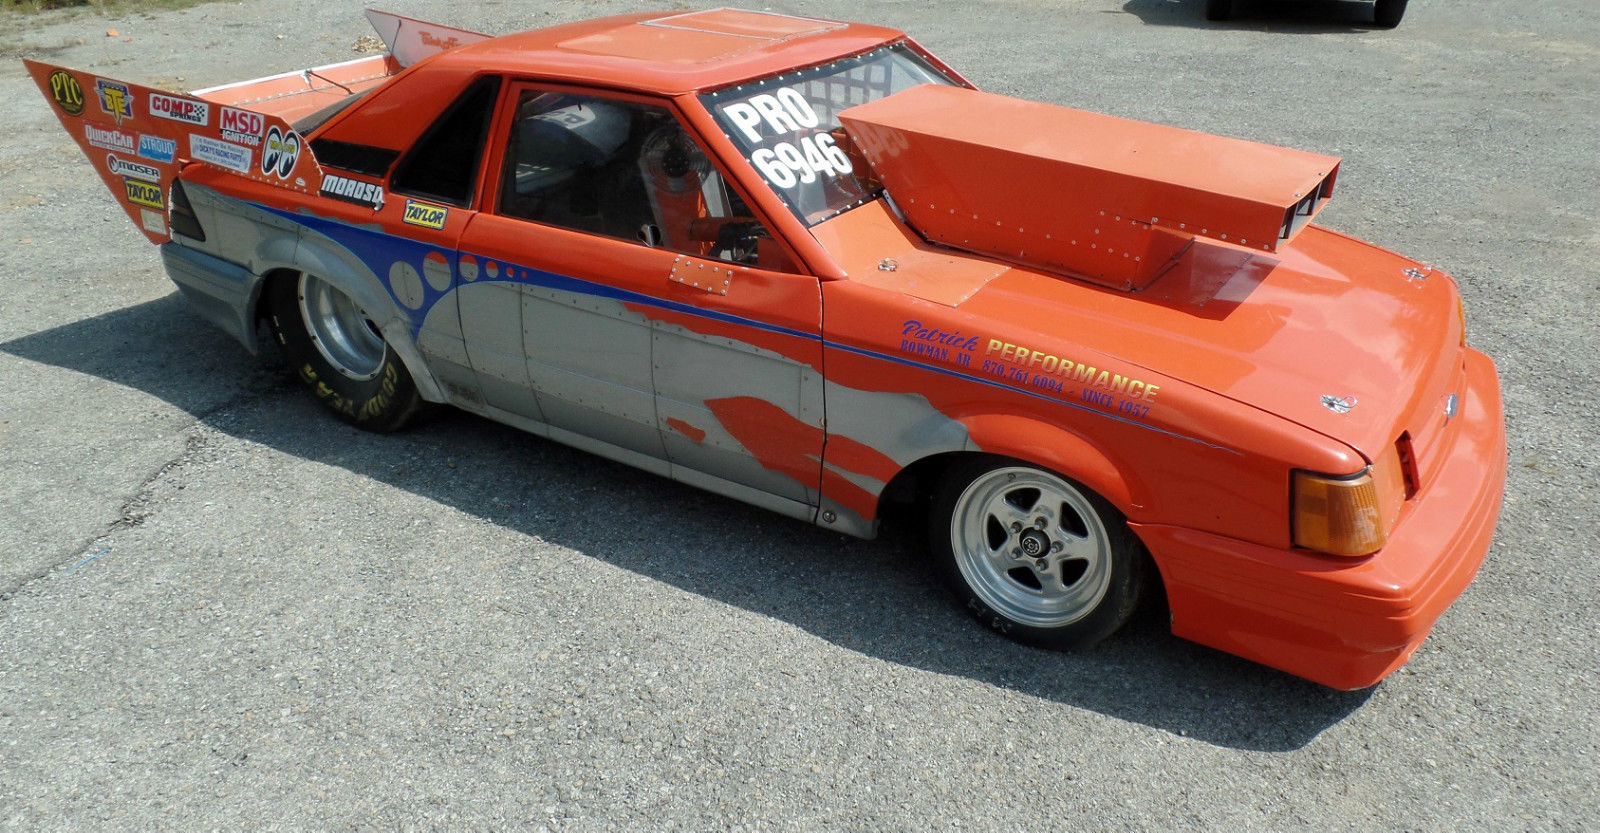 eBay Find Would You Race This Old Ford Escort EXP Pro Mod After Clearing The & BangShift.com Ford Escort GXP Pro Mod markmcfarlin.com